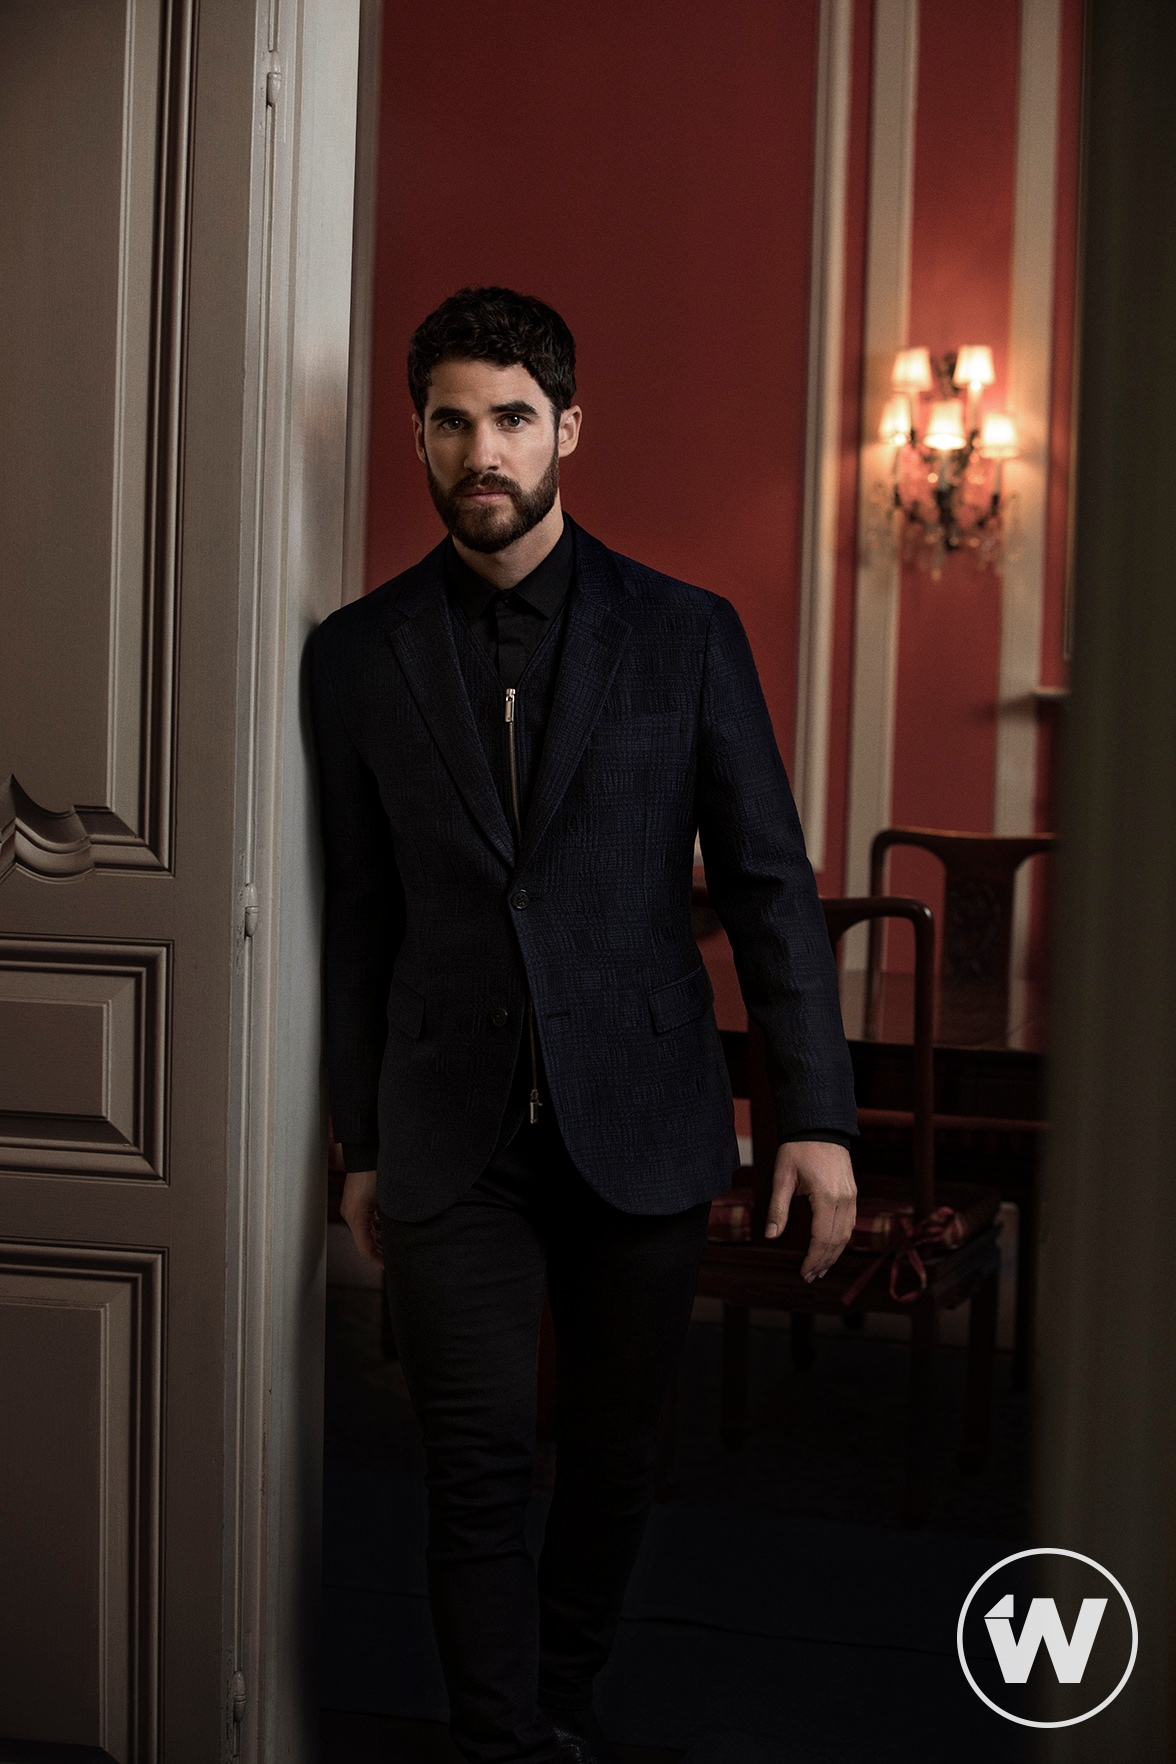 Darren Criss,The Assassination of Gianni Versace: Crime Story